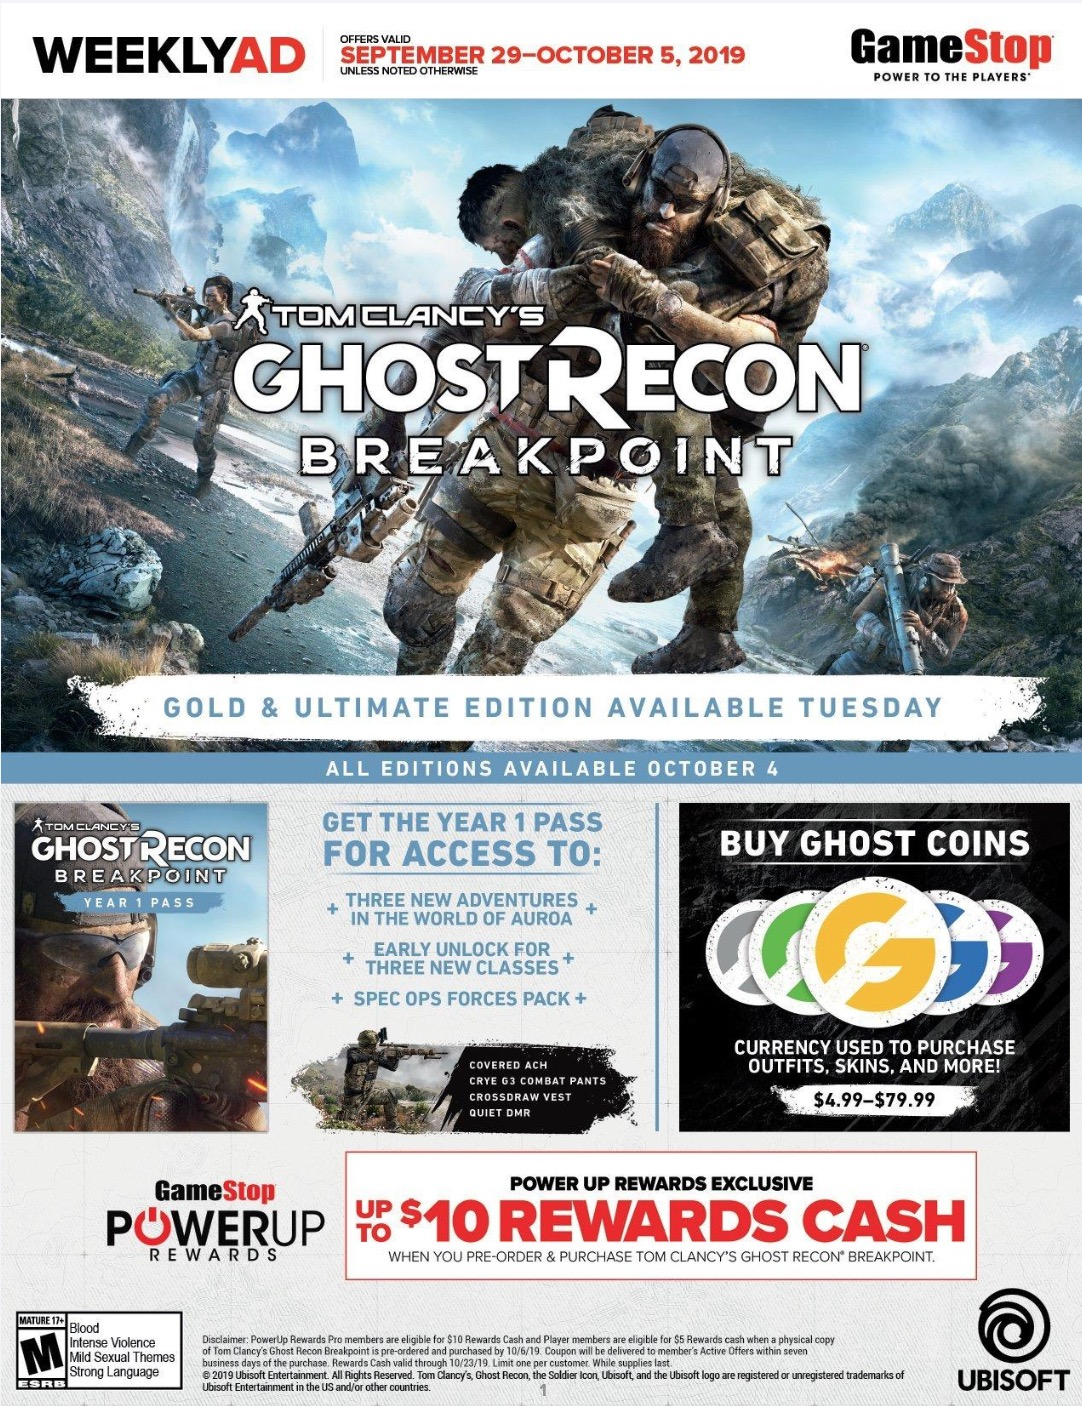 Gamestop Weekly Ad (9/29/19 - 10/5/19) Early Preview